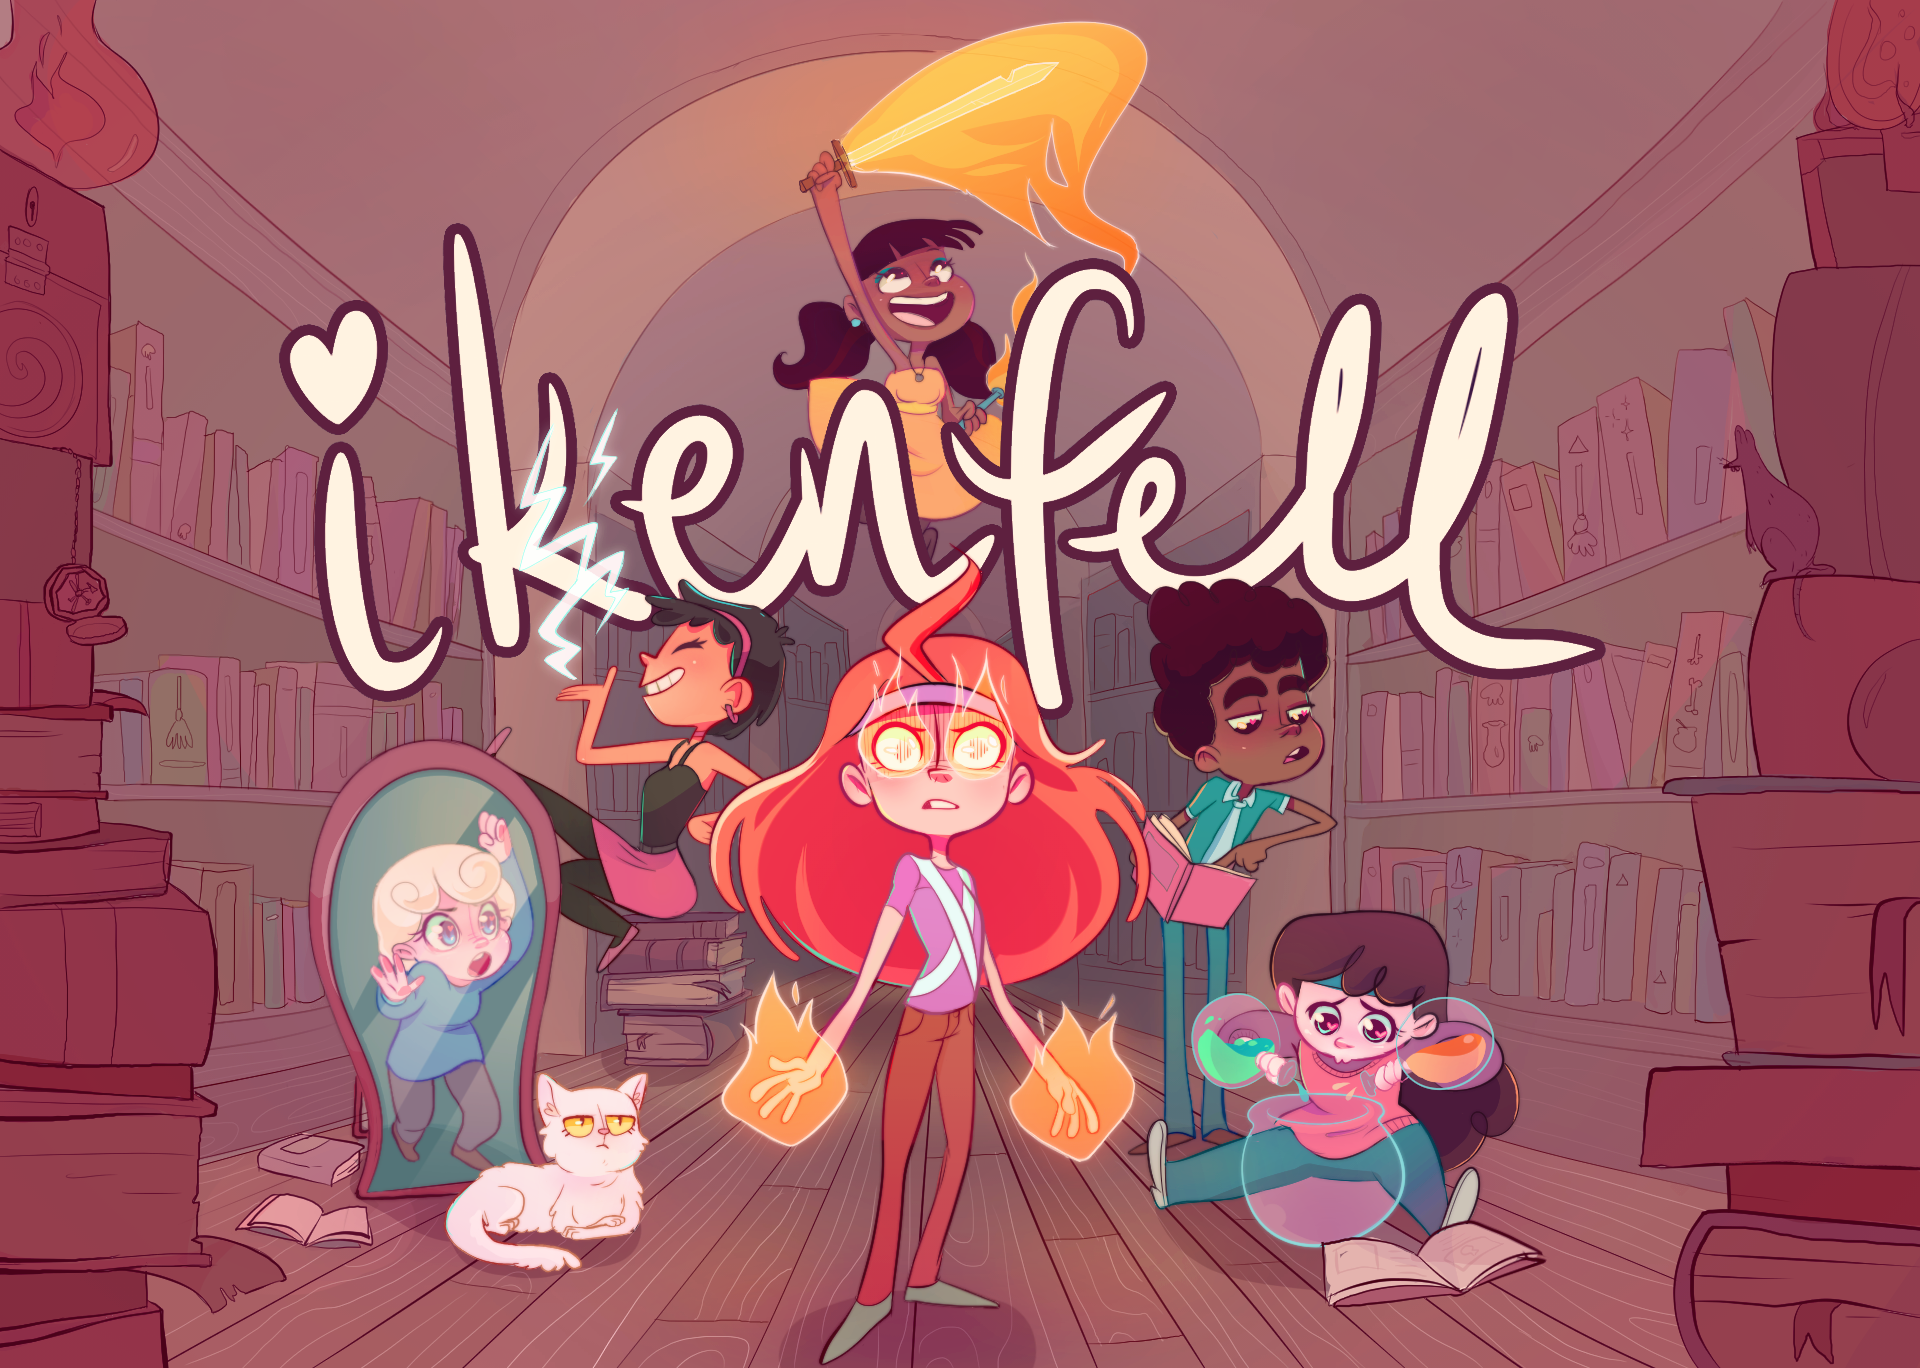 The characters of ikenfell in movie-poster style poses. They all center around the main character with the words IKENFELL in large text above them written in cursive.